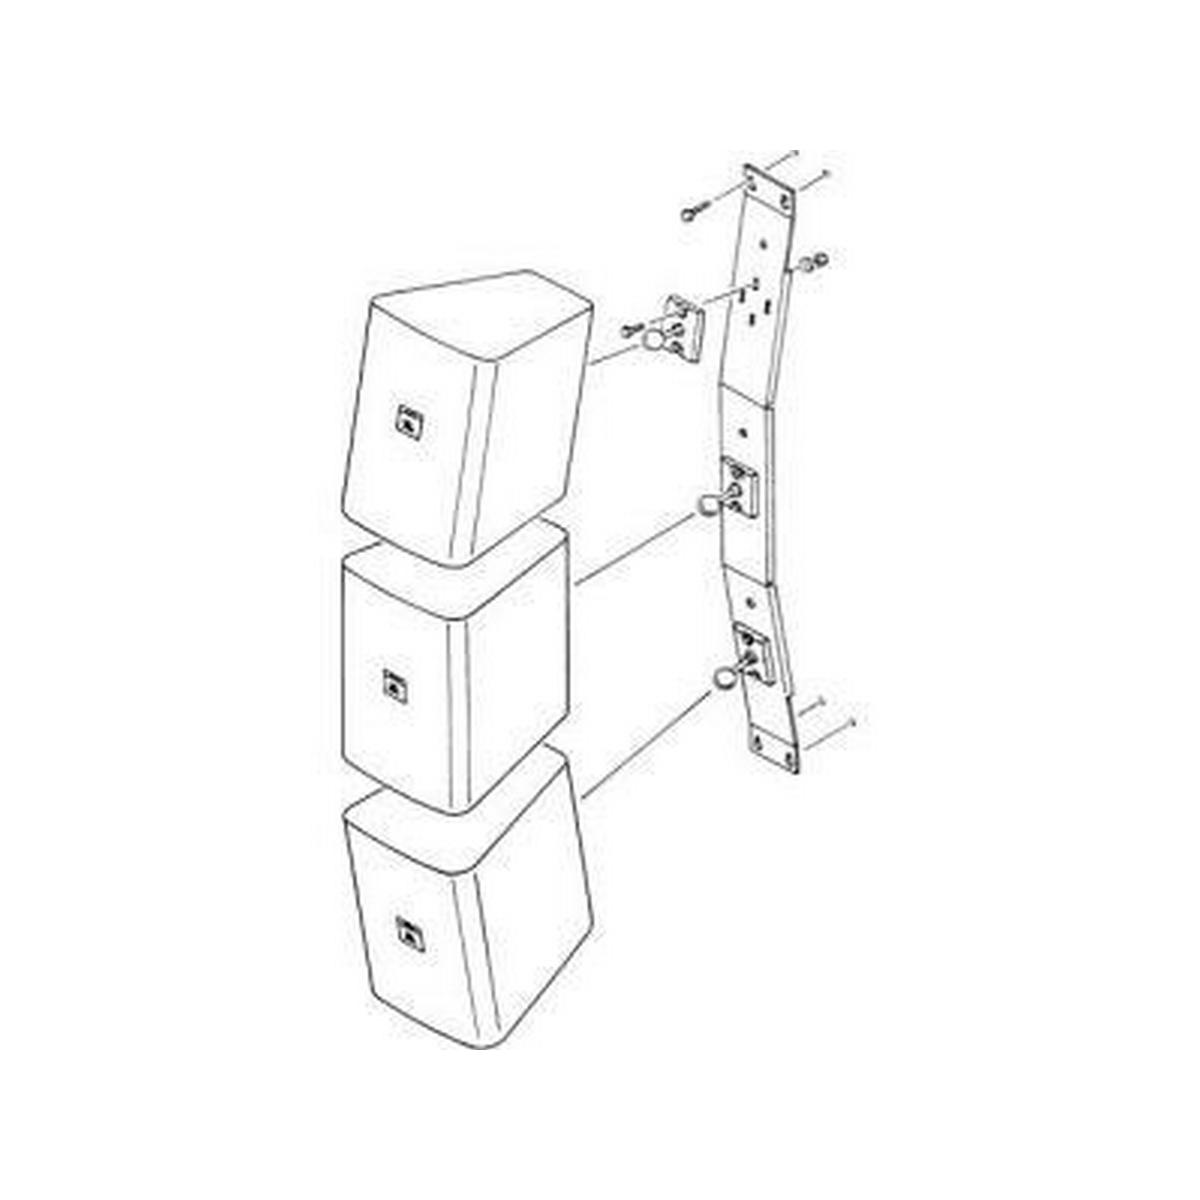 JBL MTC25V VERTICAL ARRAYING BRACKET C25 (HOLDS 3)